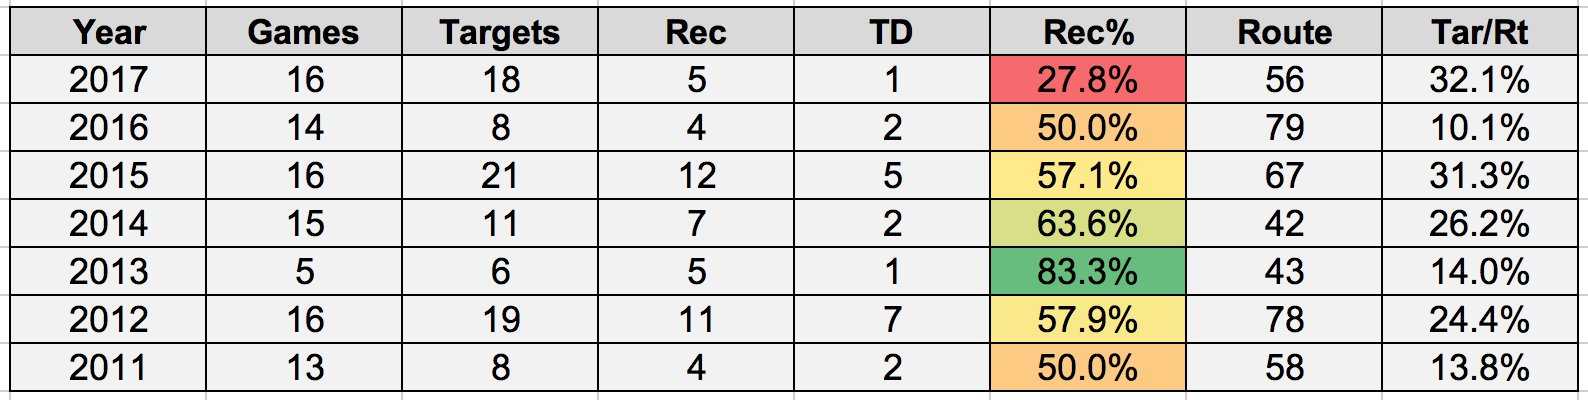 Julio Jones red zone targets were way up this season ... but catches and TDs haven't followed. https://t.co/snjpEHv9wM